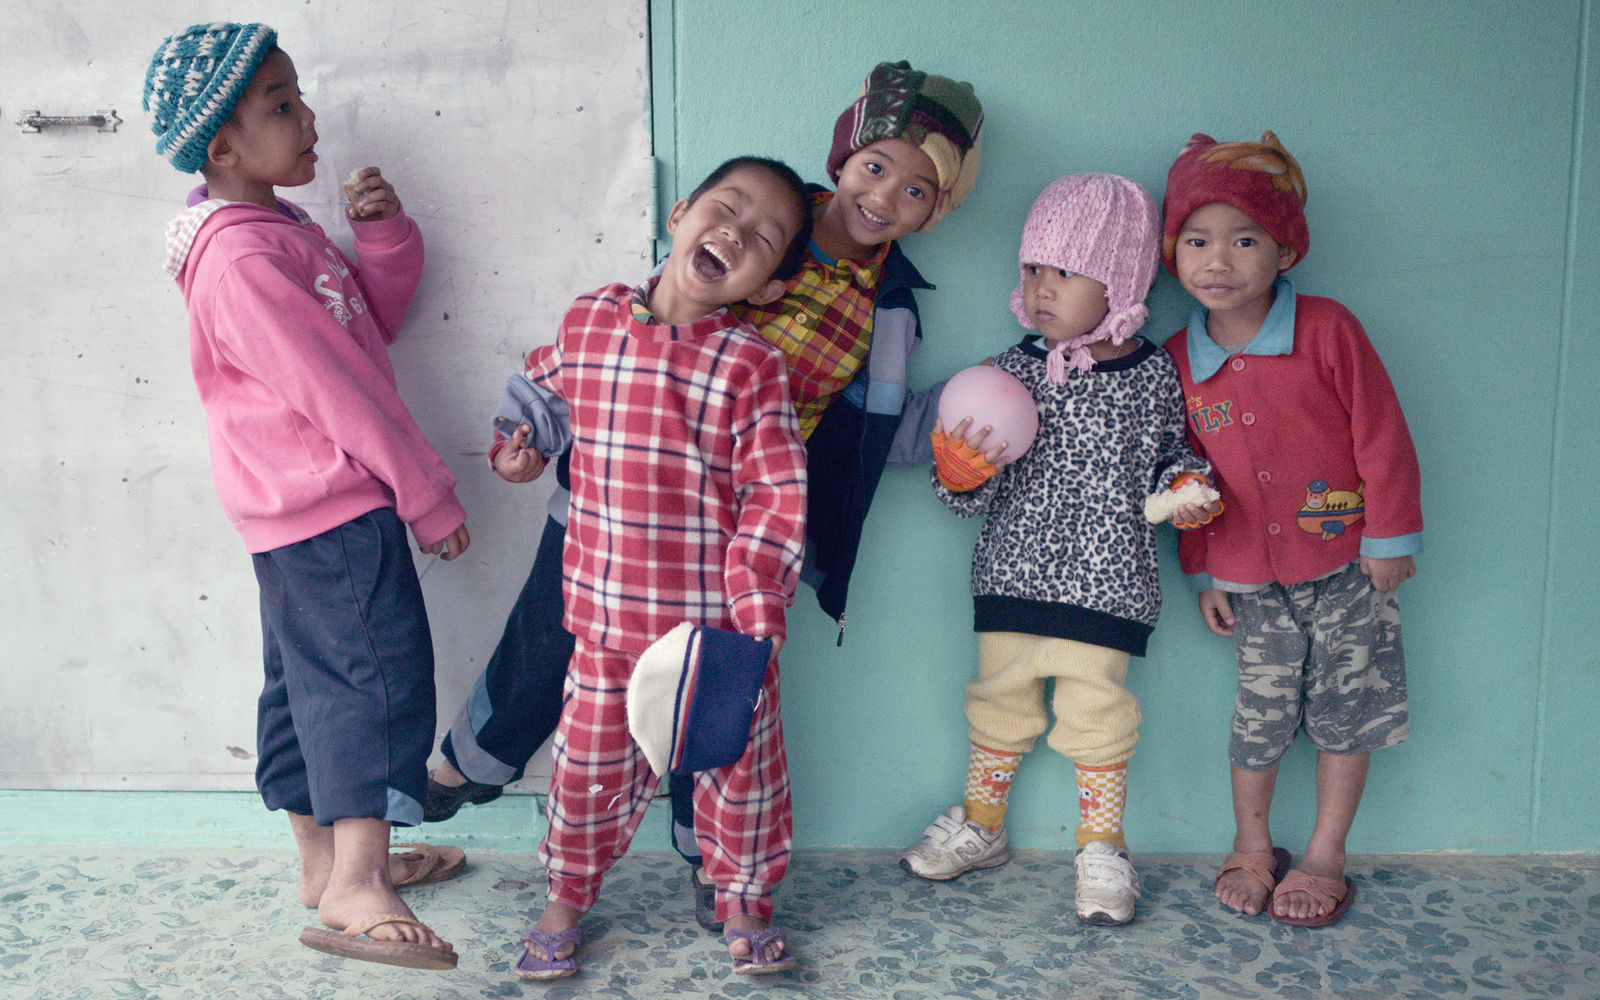 Photography of street kids posing and smiling, dressed in colourful mix-and-match clothes.